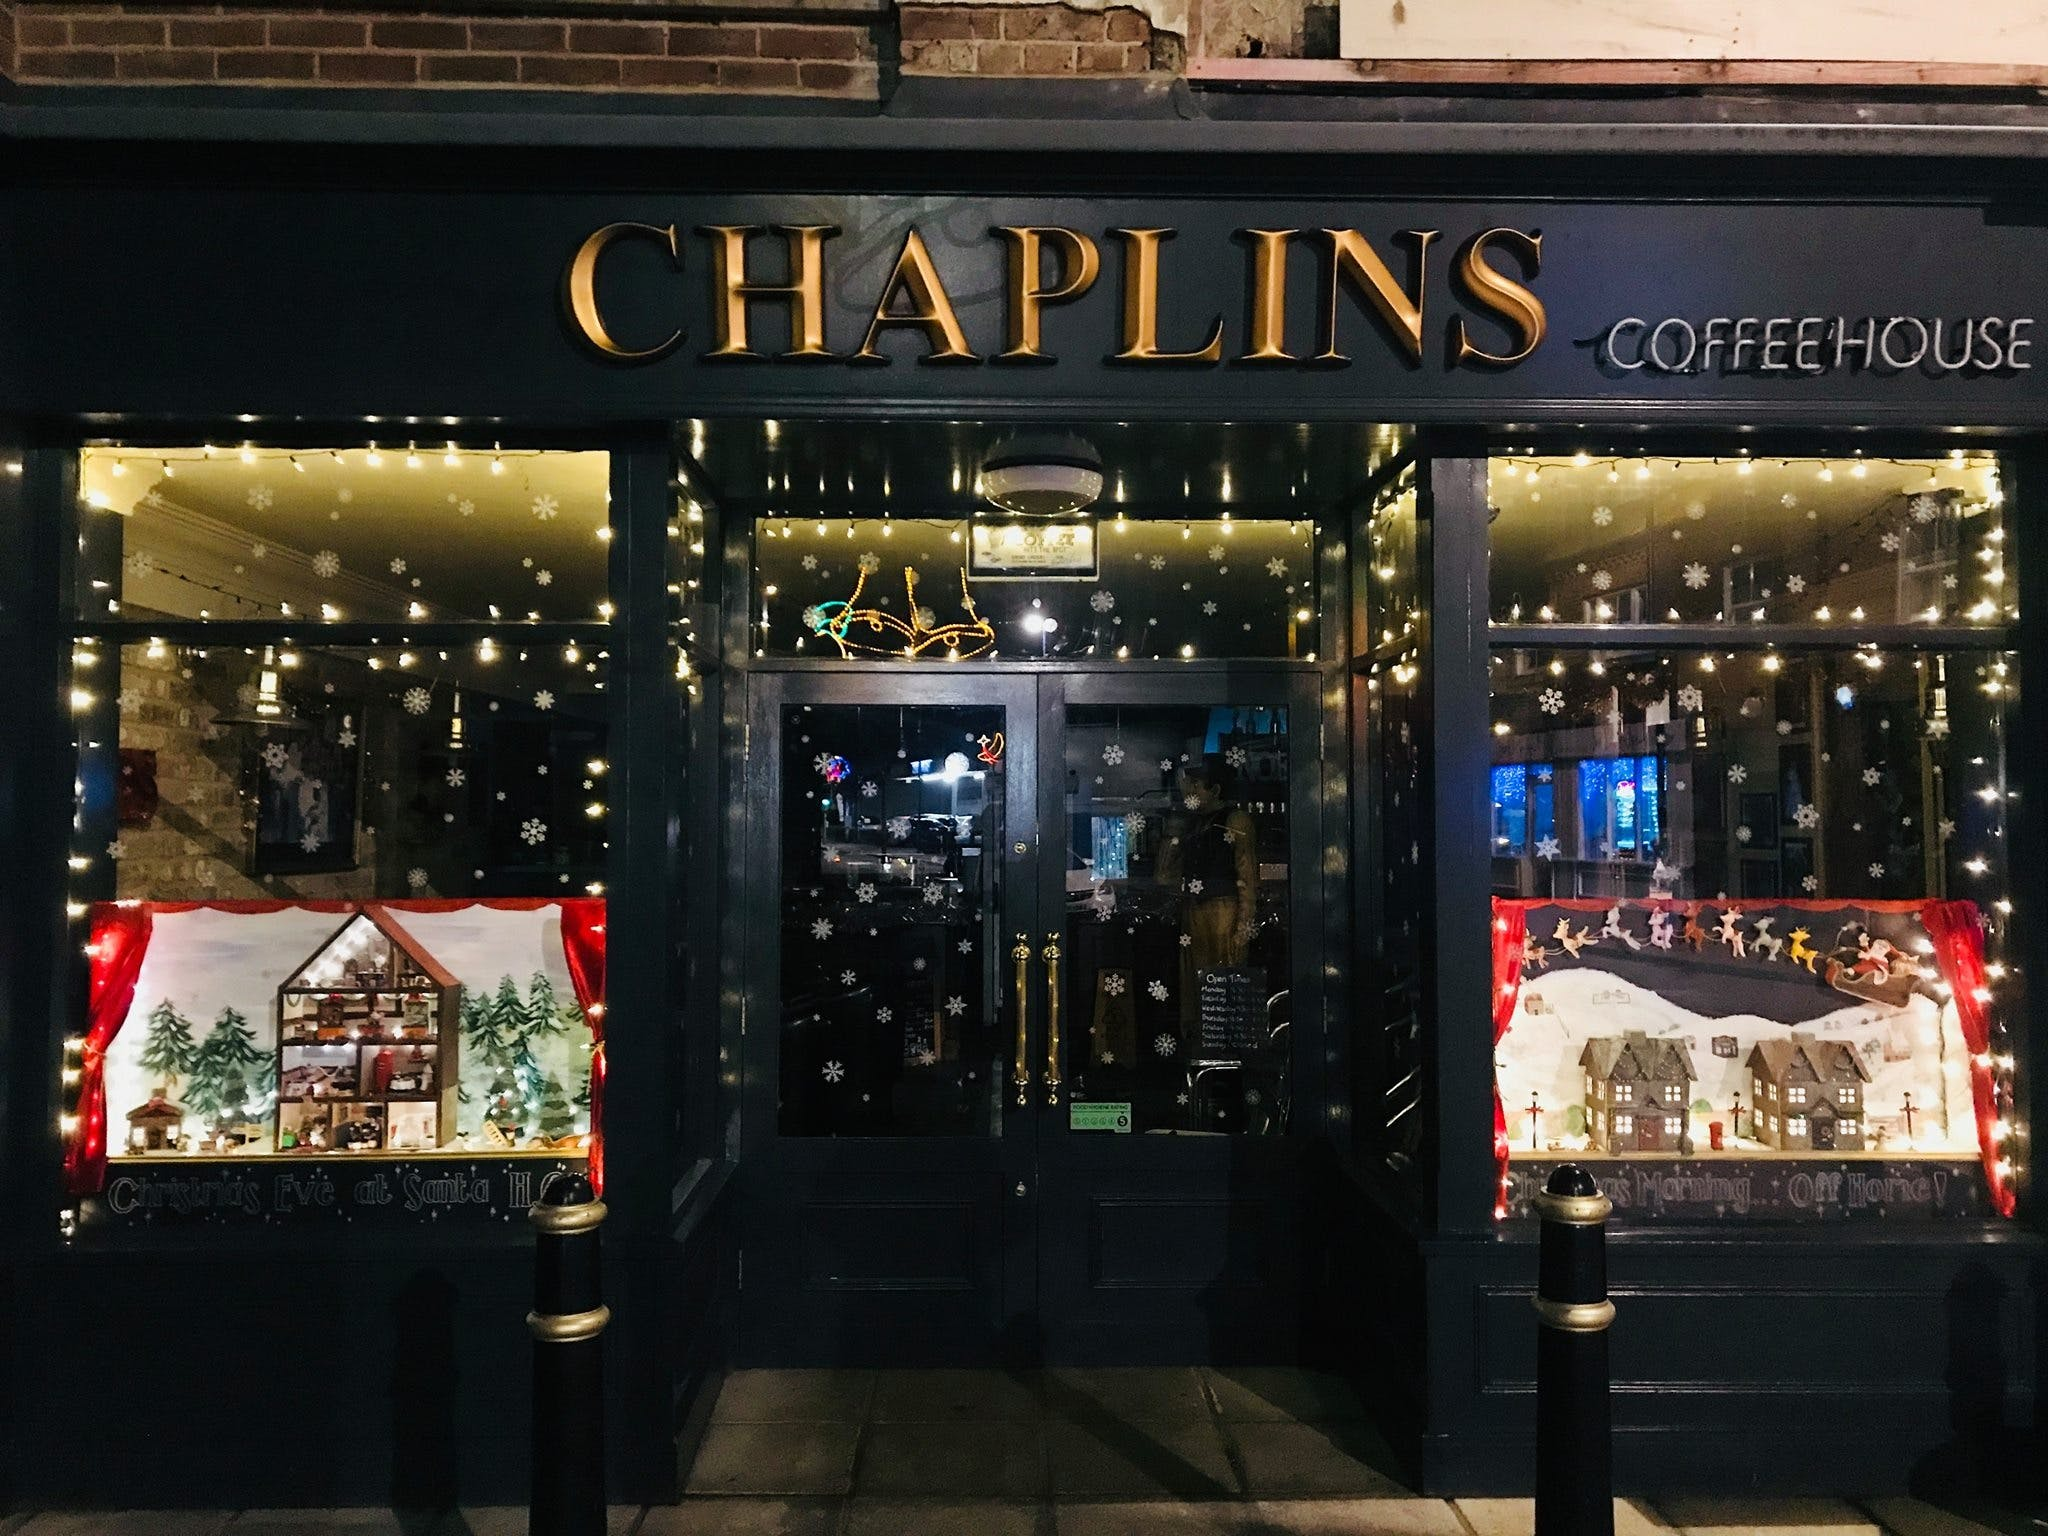 Front entrance to Chaplins Coffee House in Selsey dressed up for Christmas